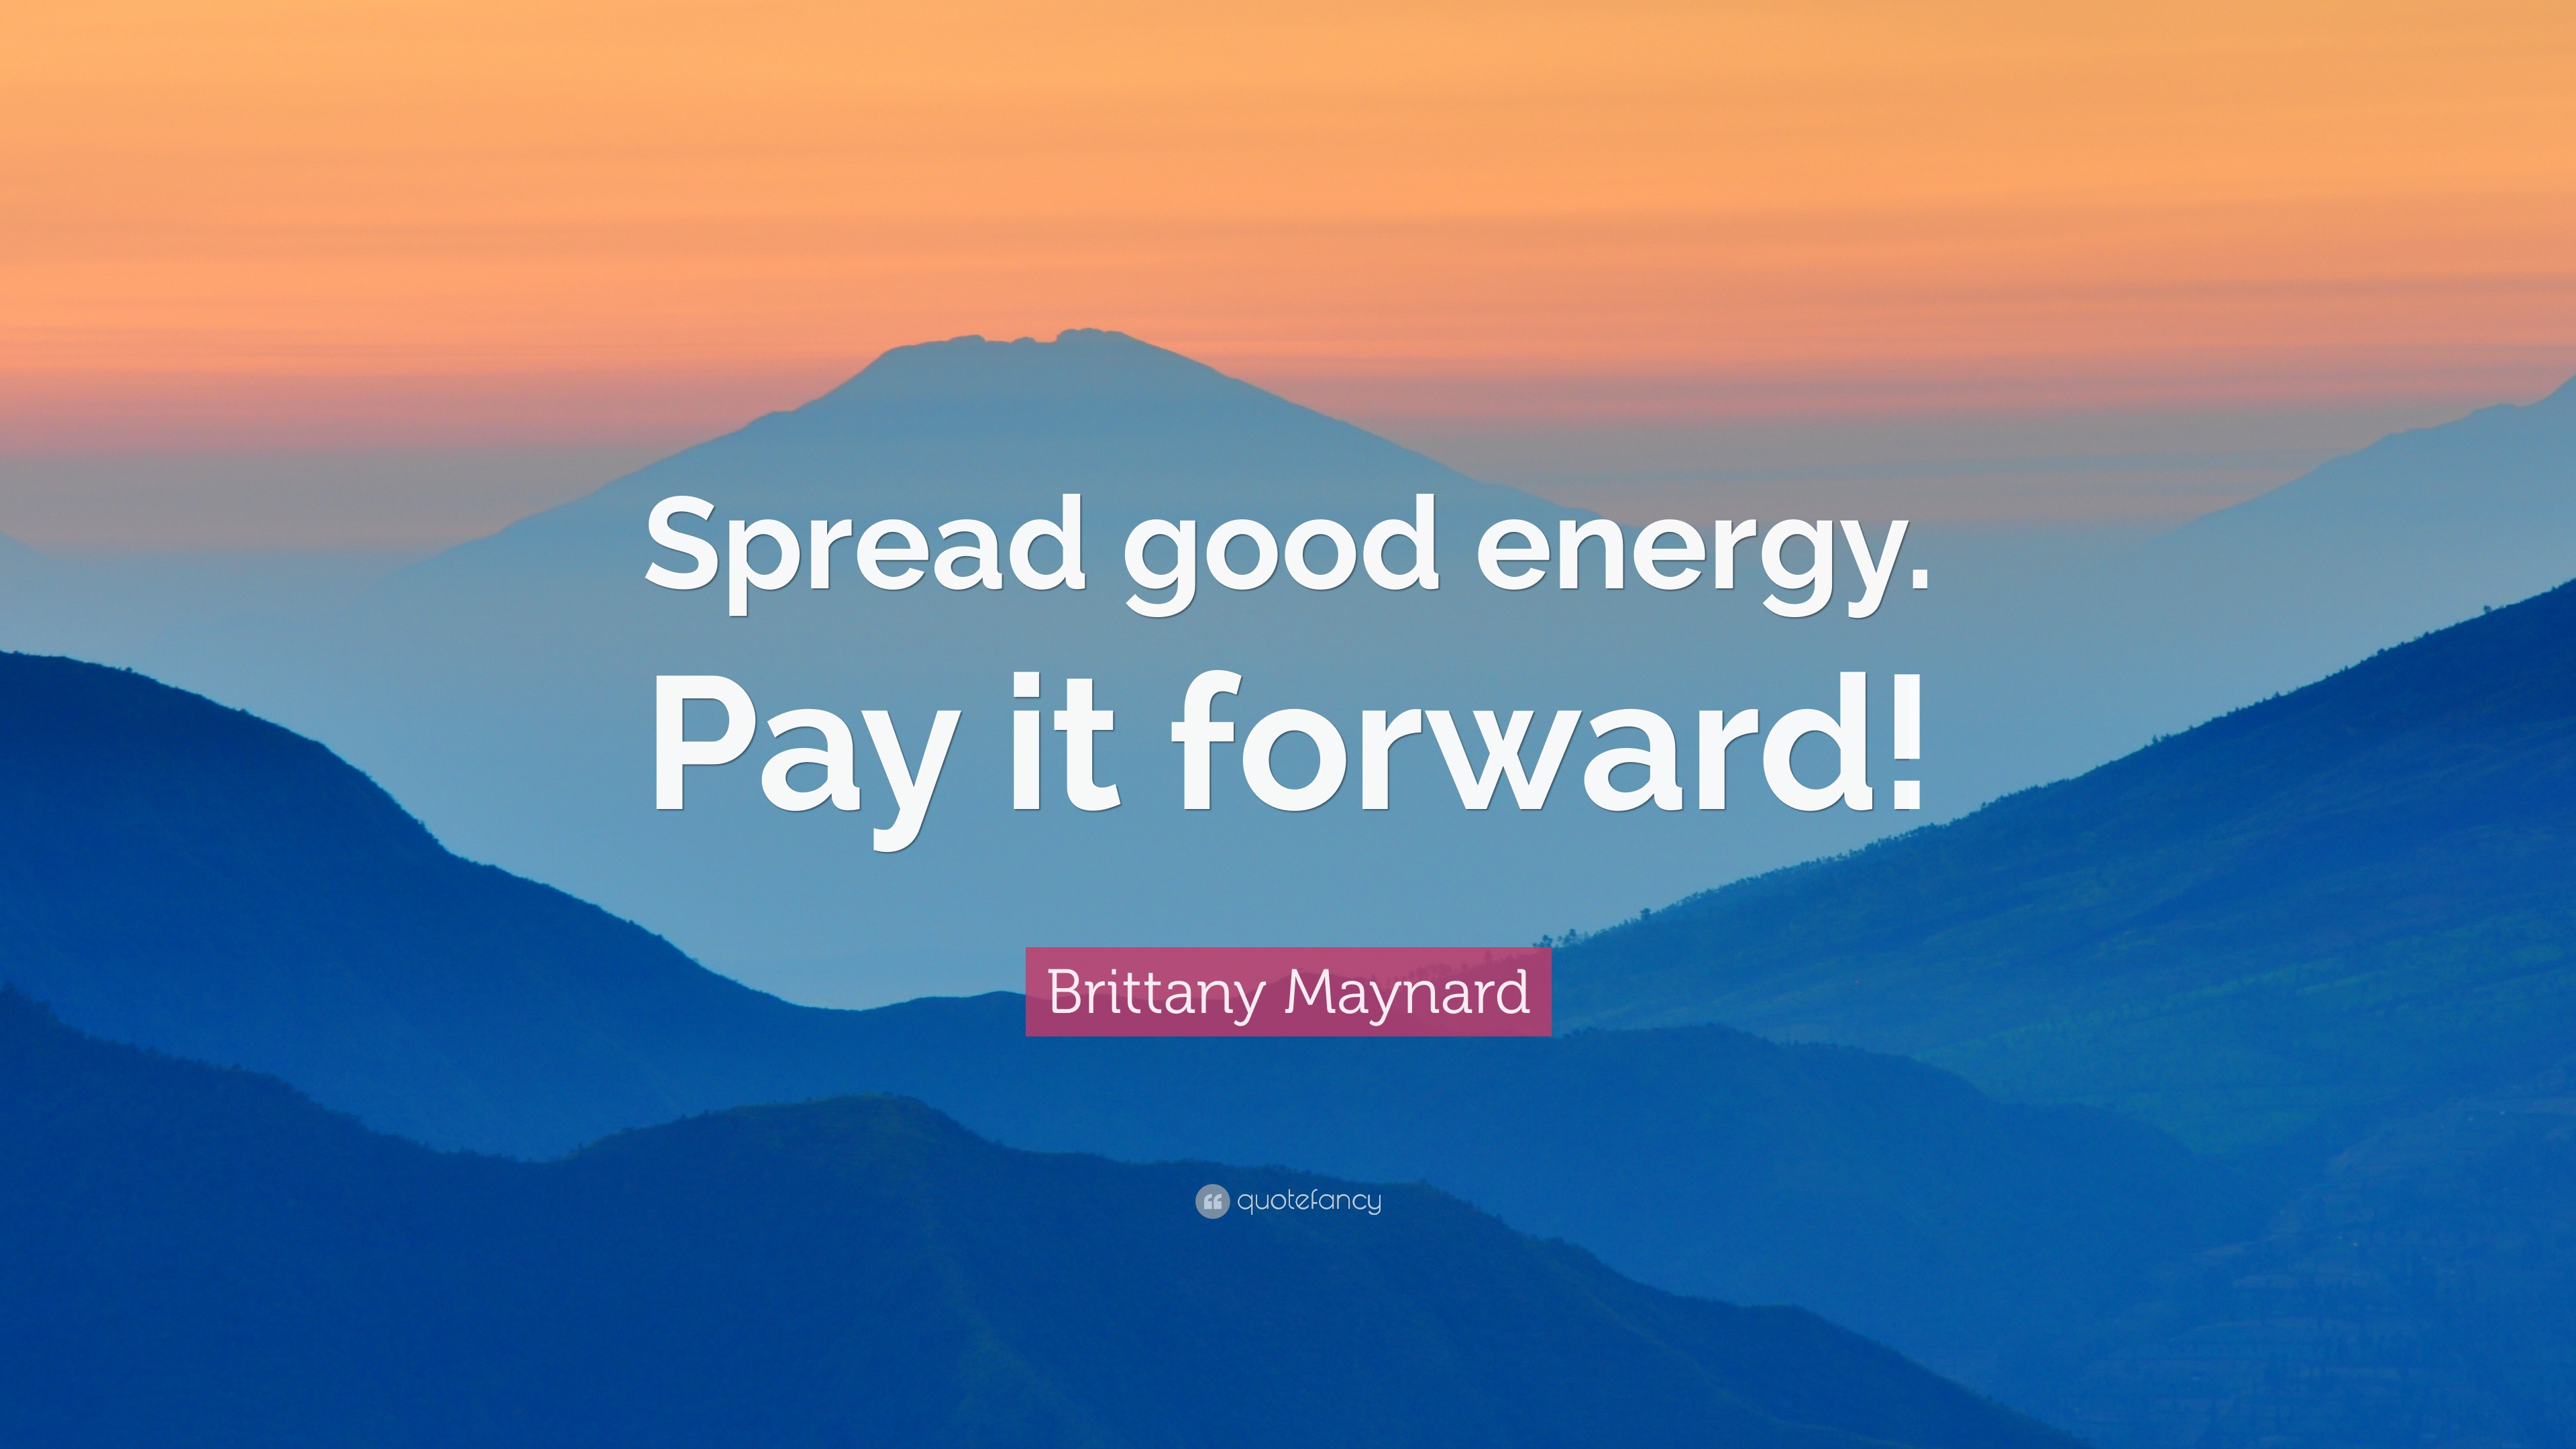 Good Energy Quotes Brittany Maynard Quotes 17 Wallpapers  Quotefancy